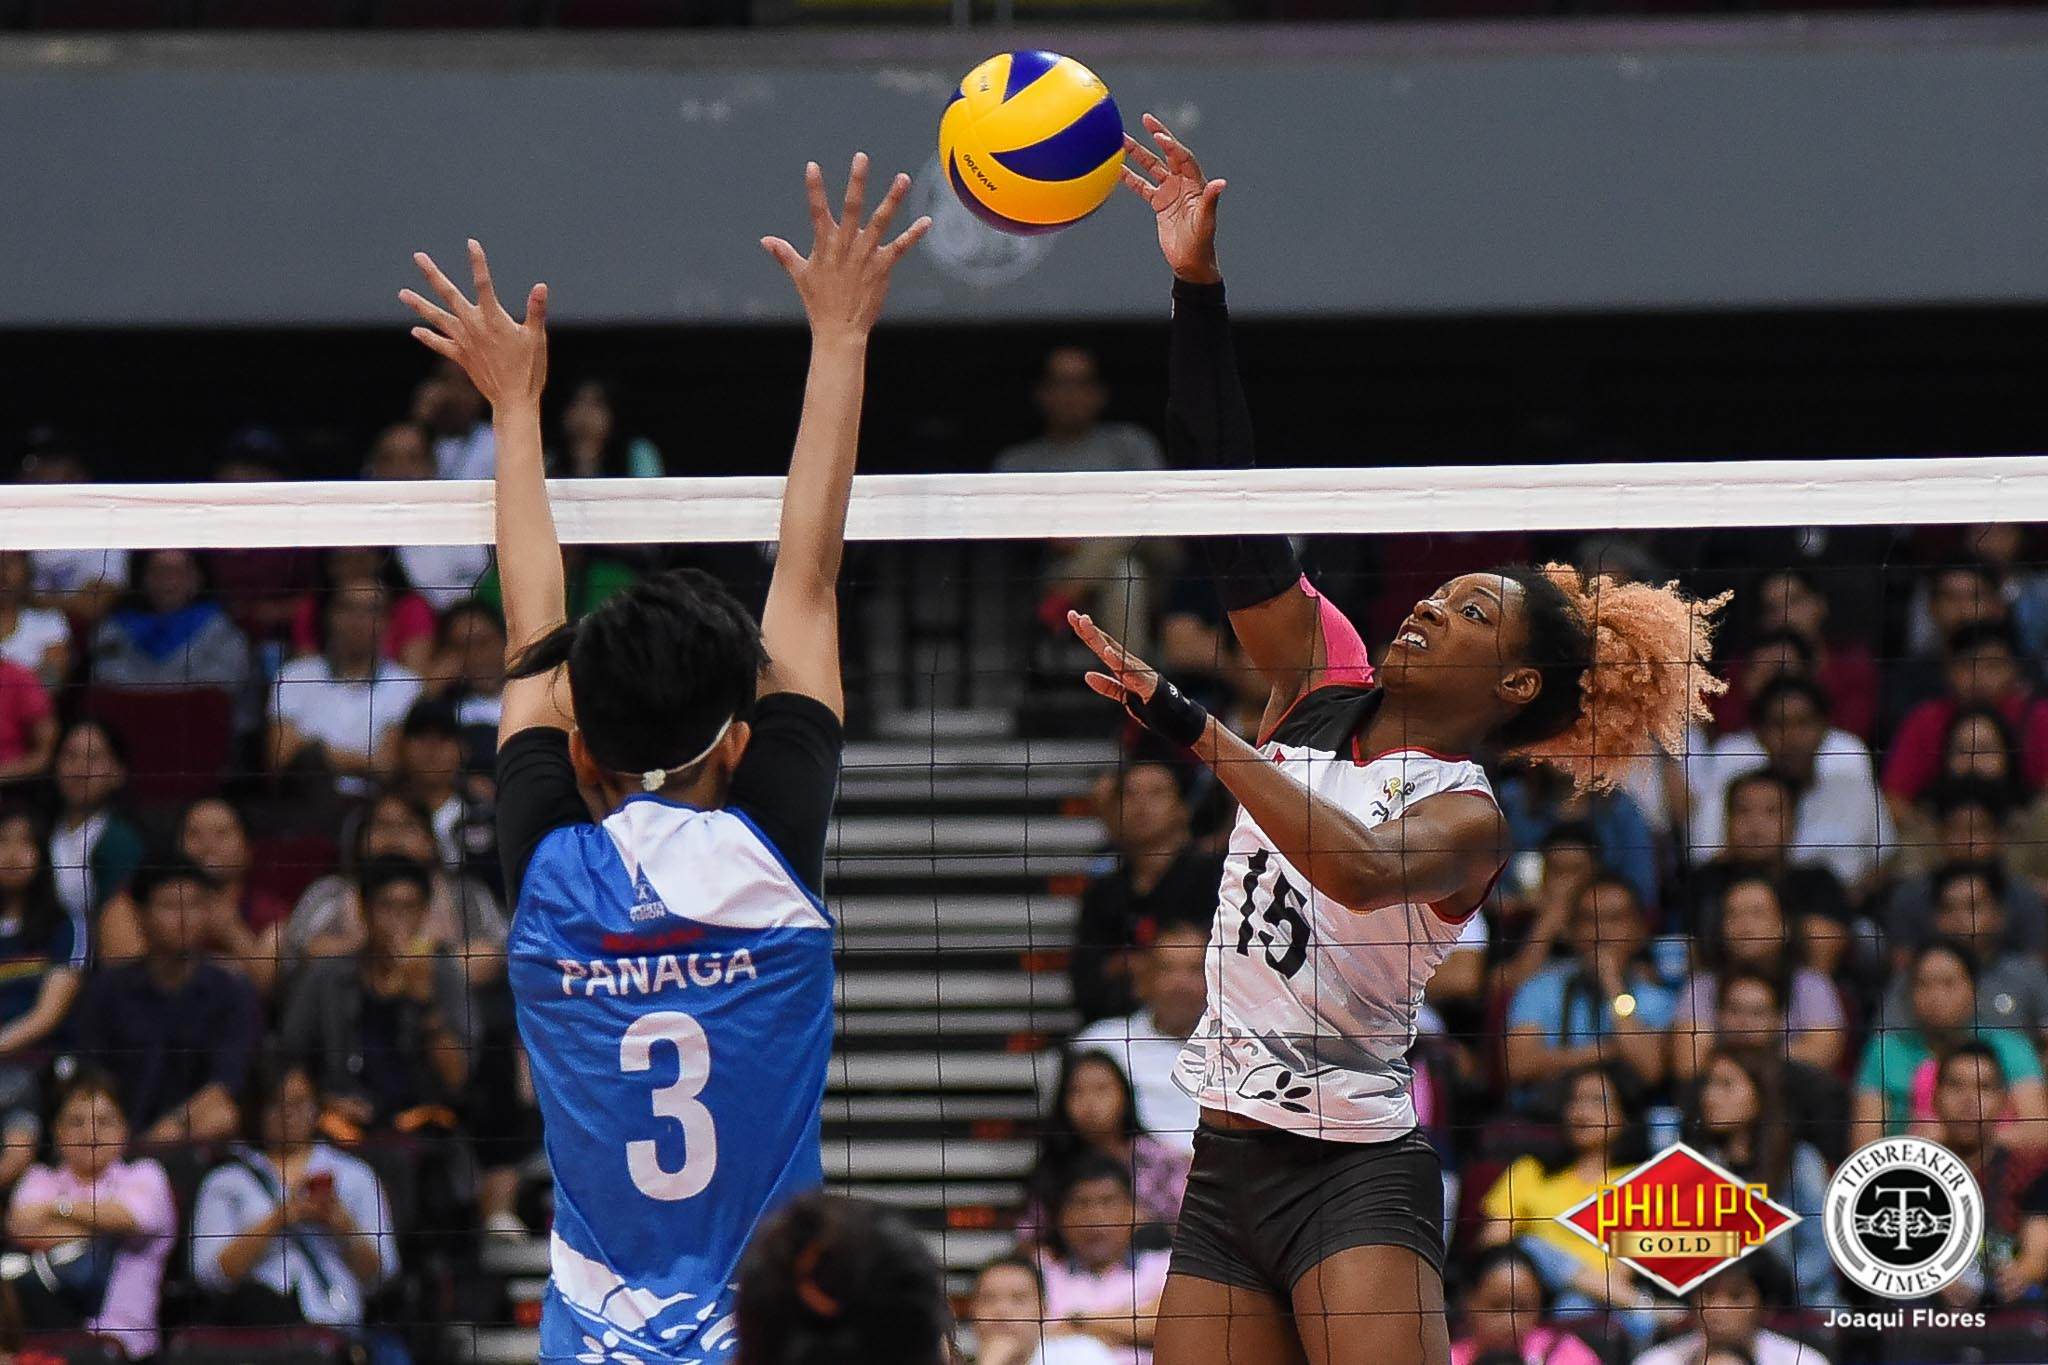 Tiebreaker Times BanKo extends bronze series, slams Pocari Sweat-Air Force News PVL Volleyball  Pocari Sweat-Air Force Lady Warriors Perlas Lady Spikers Maddie Palmer Kia Bright Jutarat Montripilia Jem Ferrer Jasper Jimenez Ella De Jesus Dong dela Cruz Arielle Love 2018 PVL Women's Reinforced Conference 2018 PVL Season